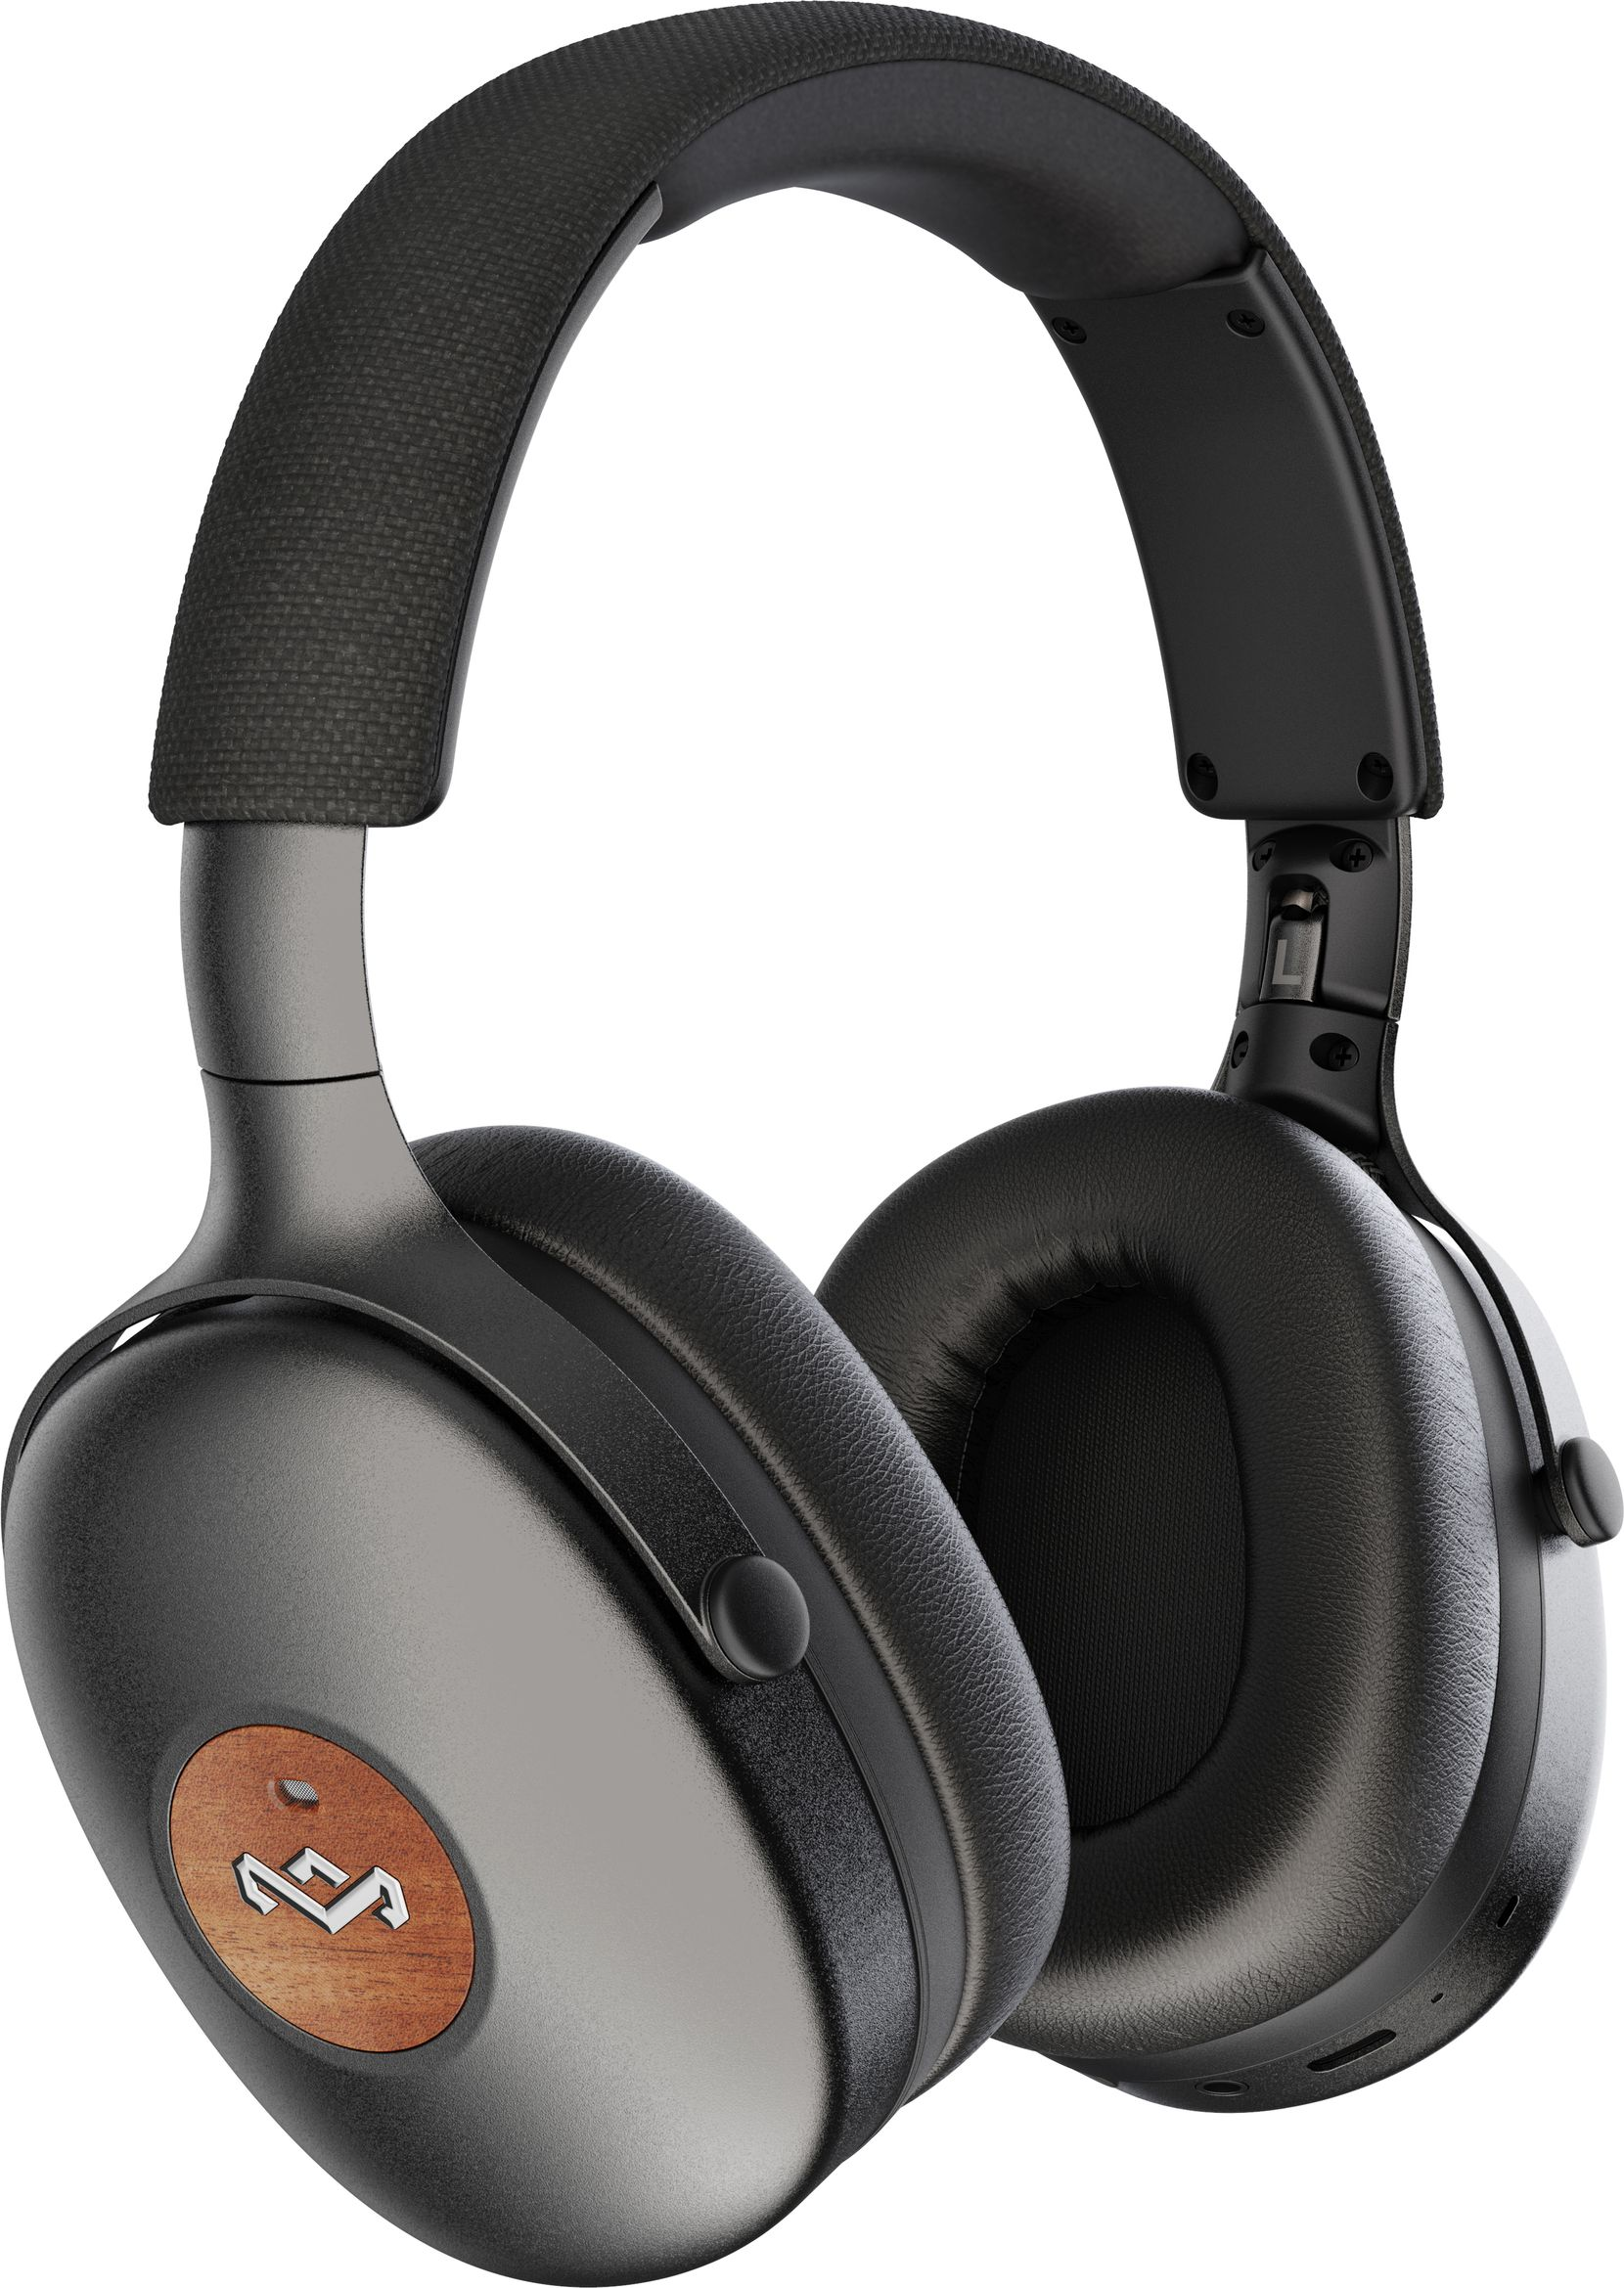 The House of Marley Positive Vibration XL ANC Wireless Headphones